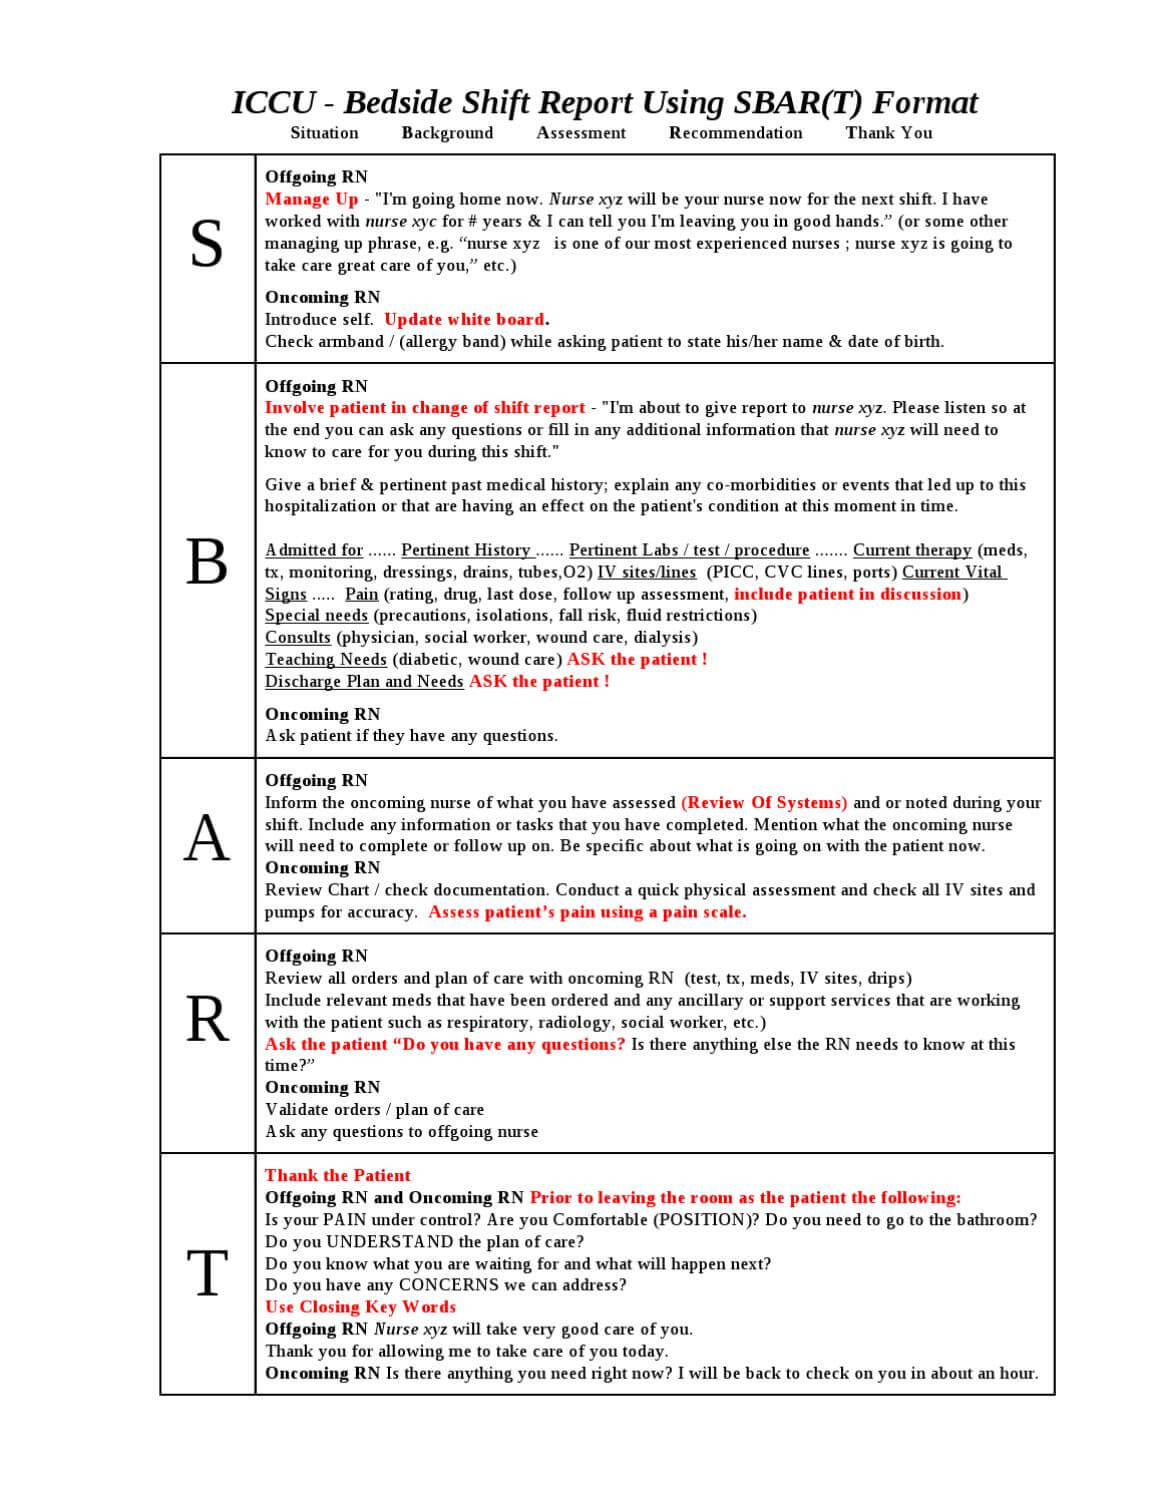 027 Page 1 Nursing Shift Report Template Unforgettable Ideas For Sbar Template Word